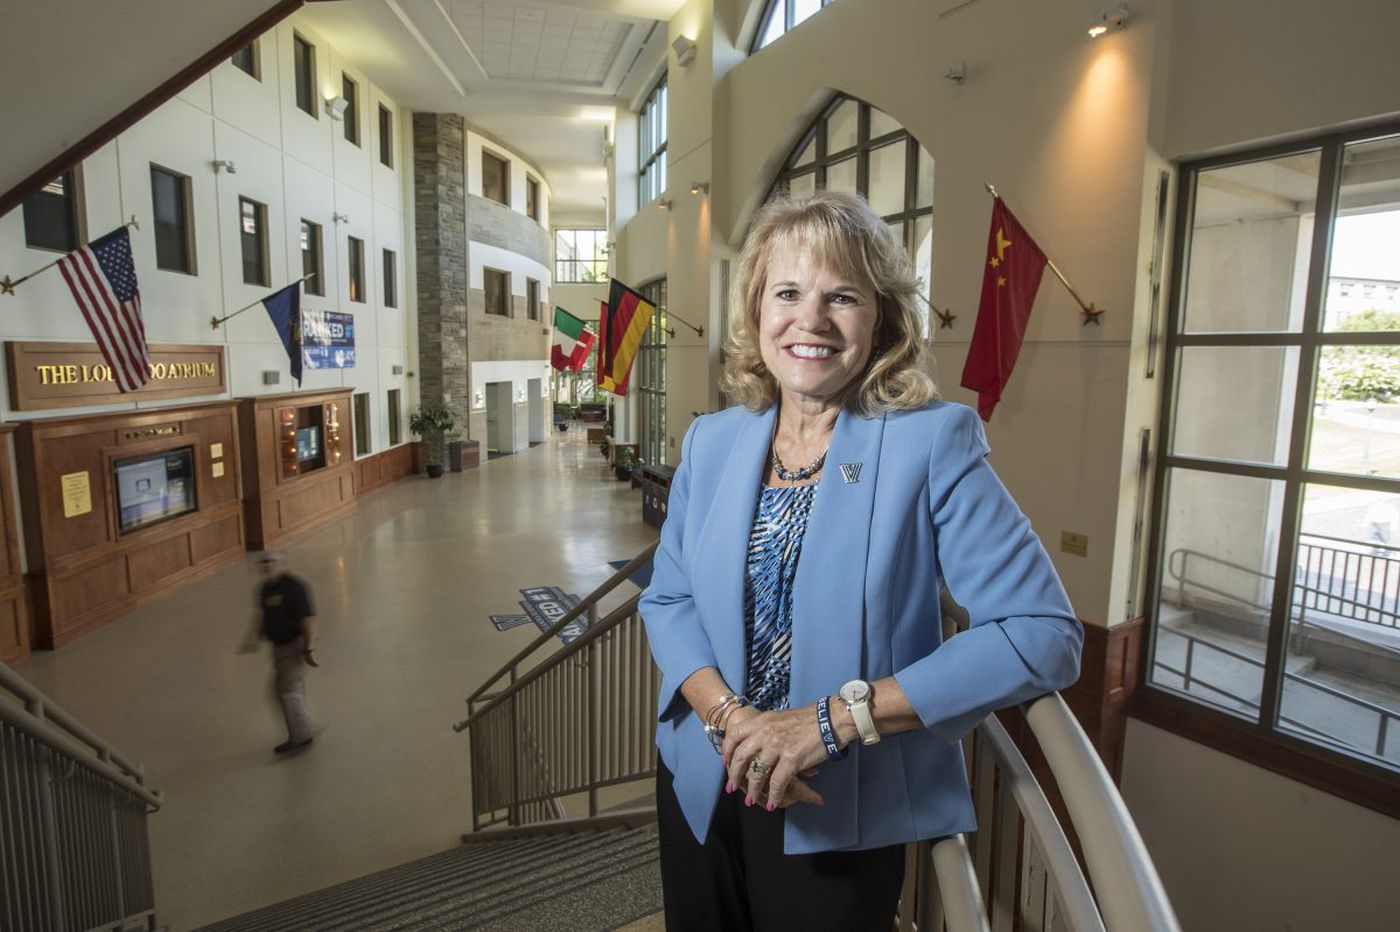 Negotiating? Have a Plan B, says Villanova's business dean